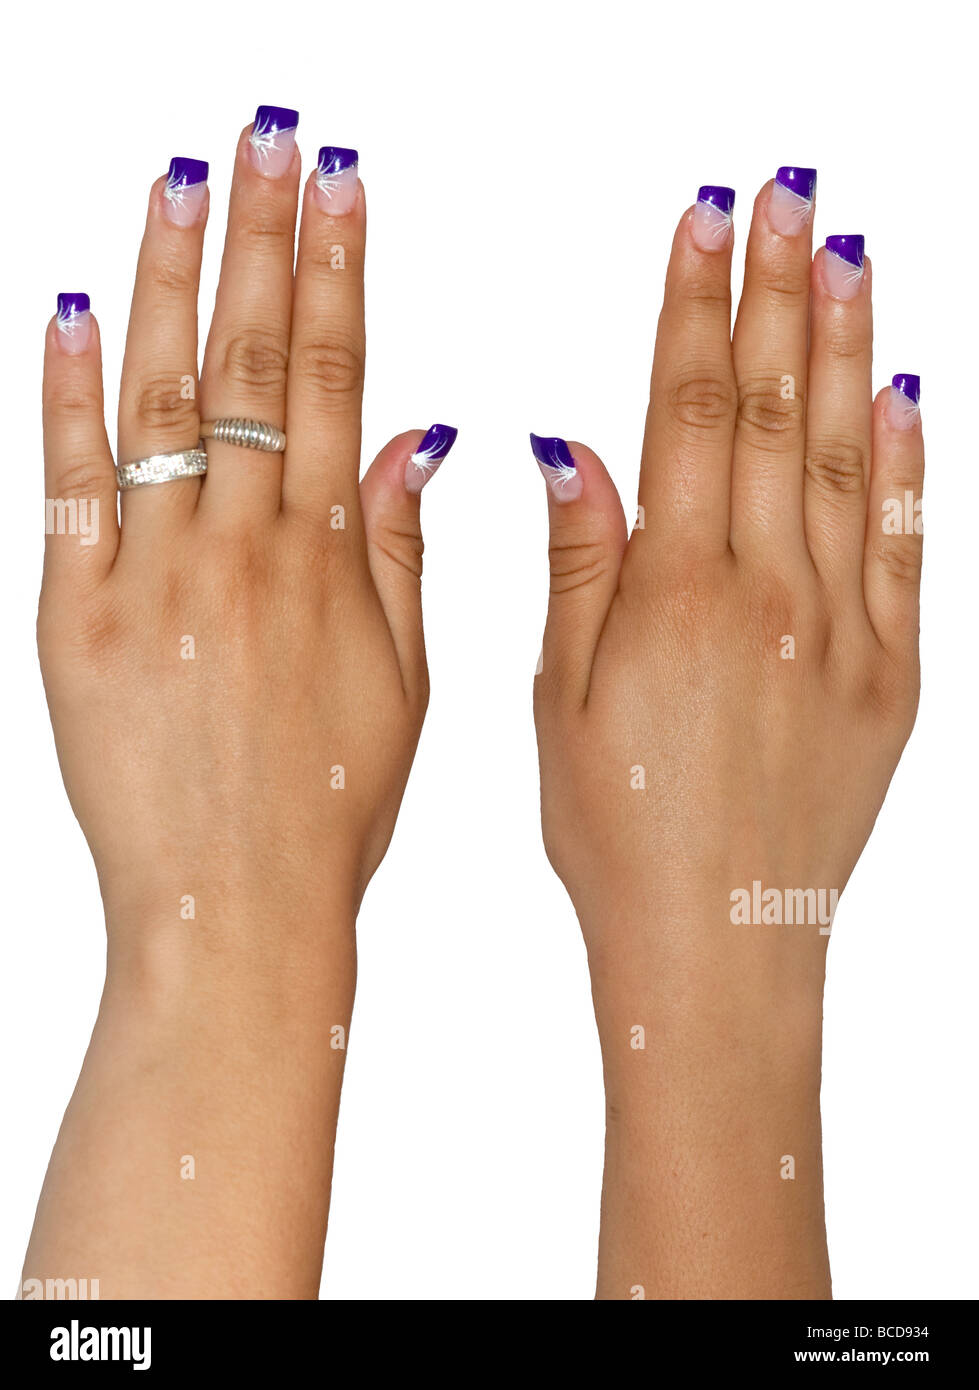 Purple acrylic nails on the hands of a teenage girl - Stock Image